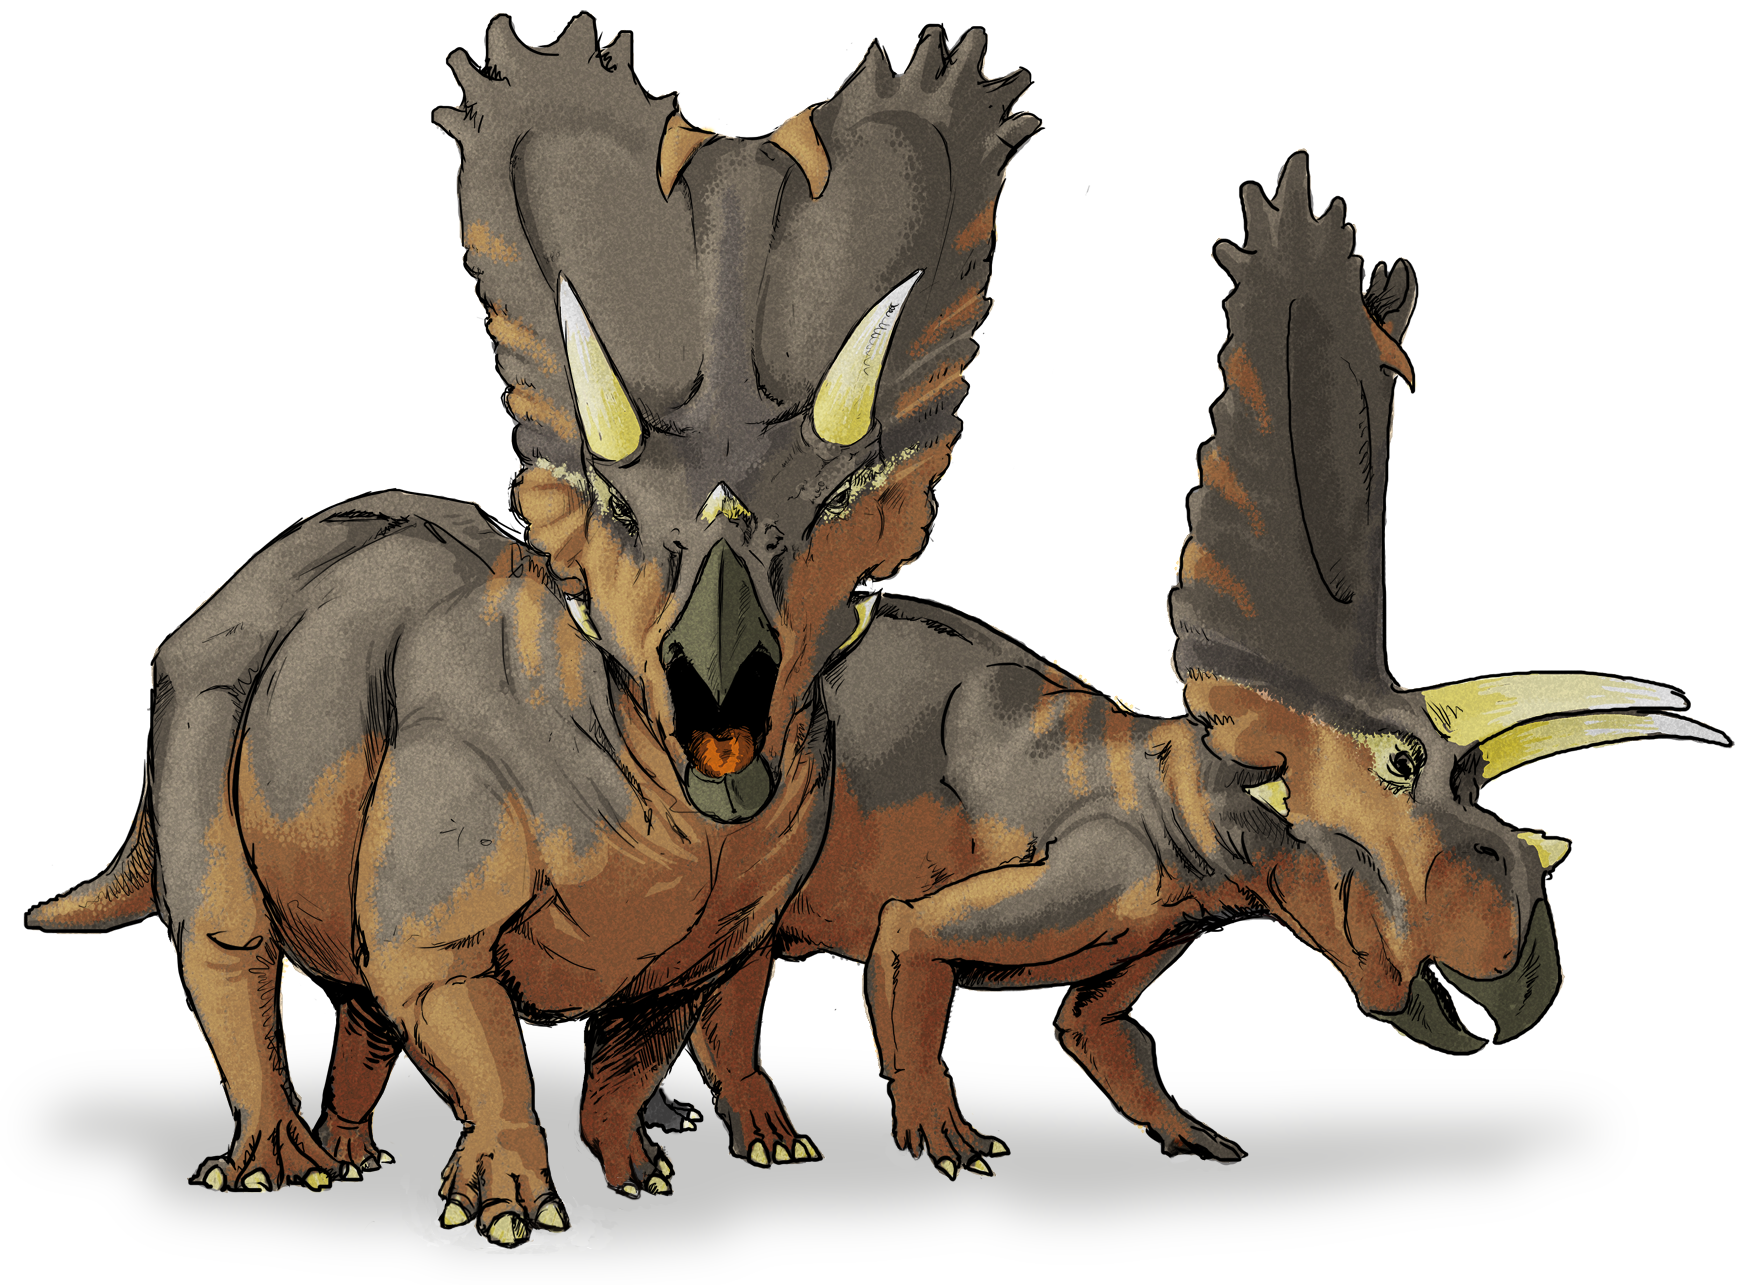 New dinosaurs species with